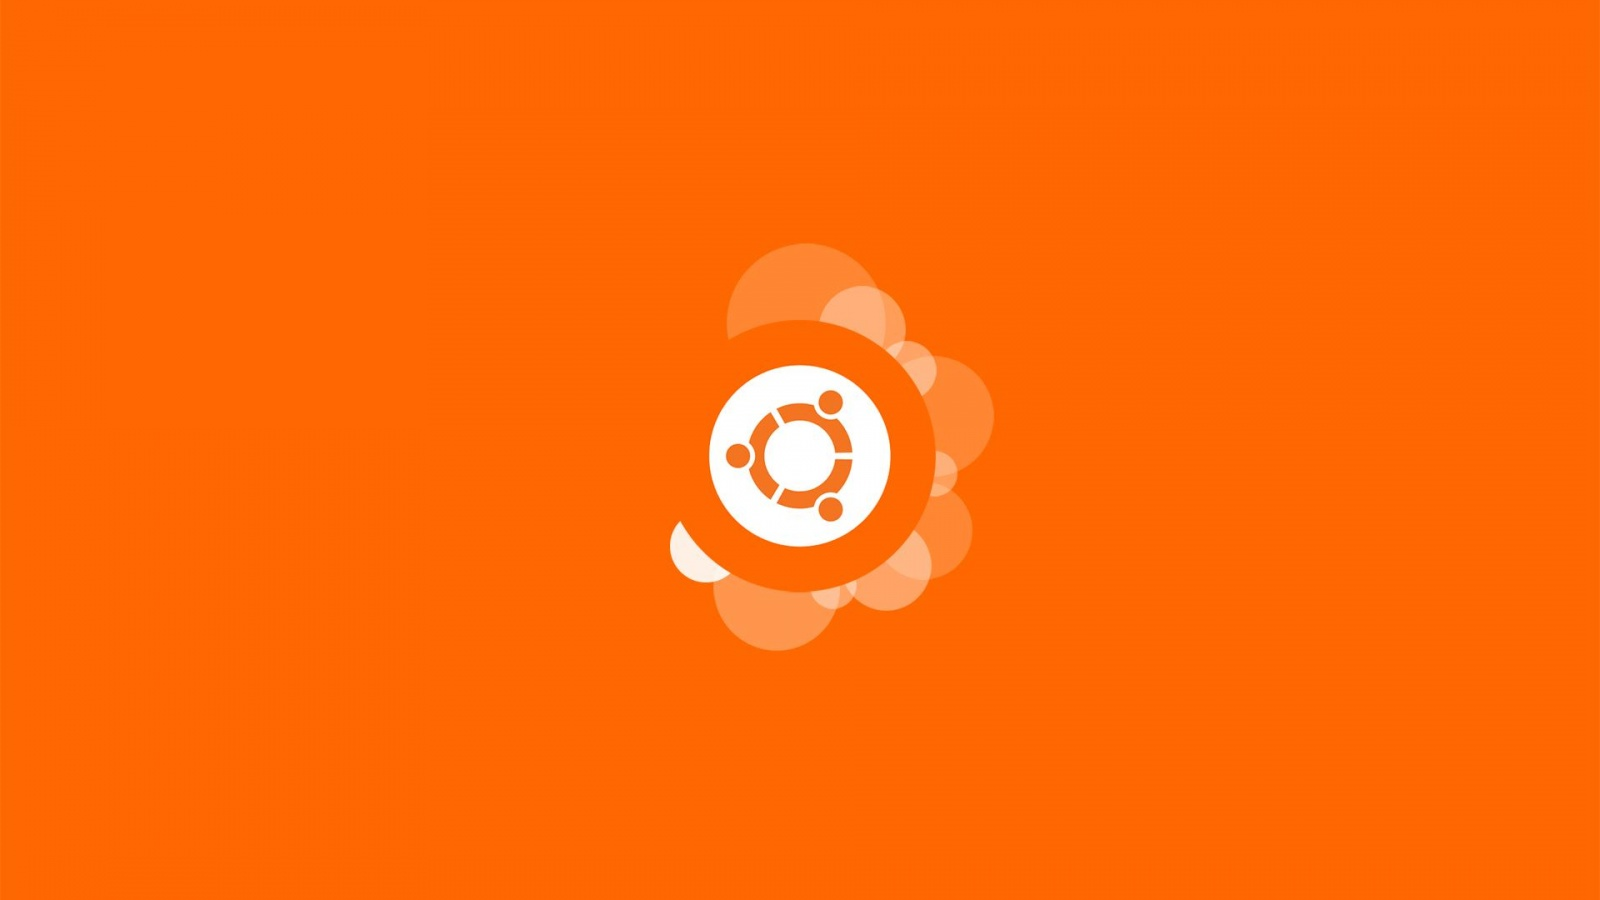 Ubuntu Orange Background